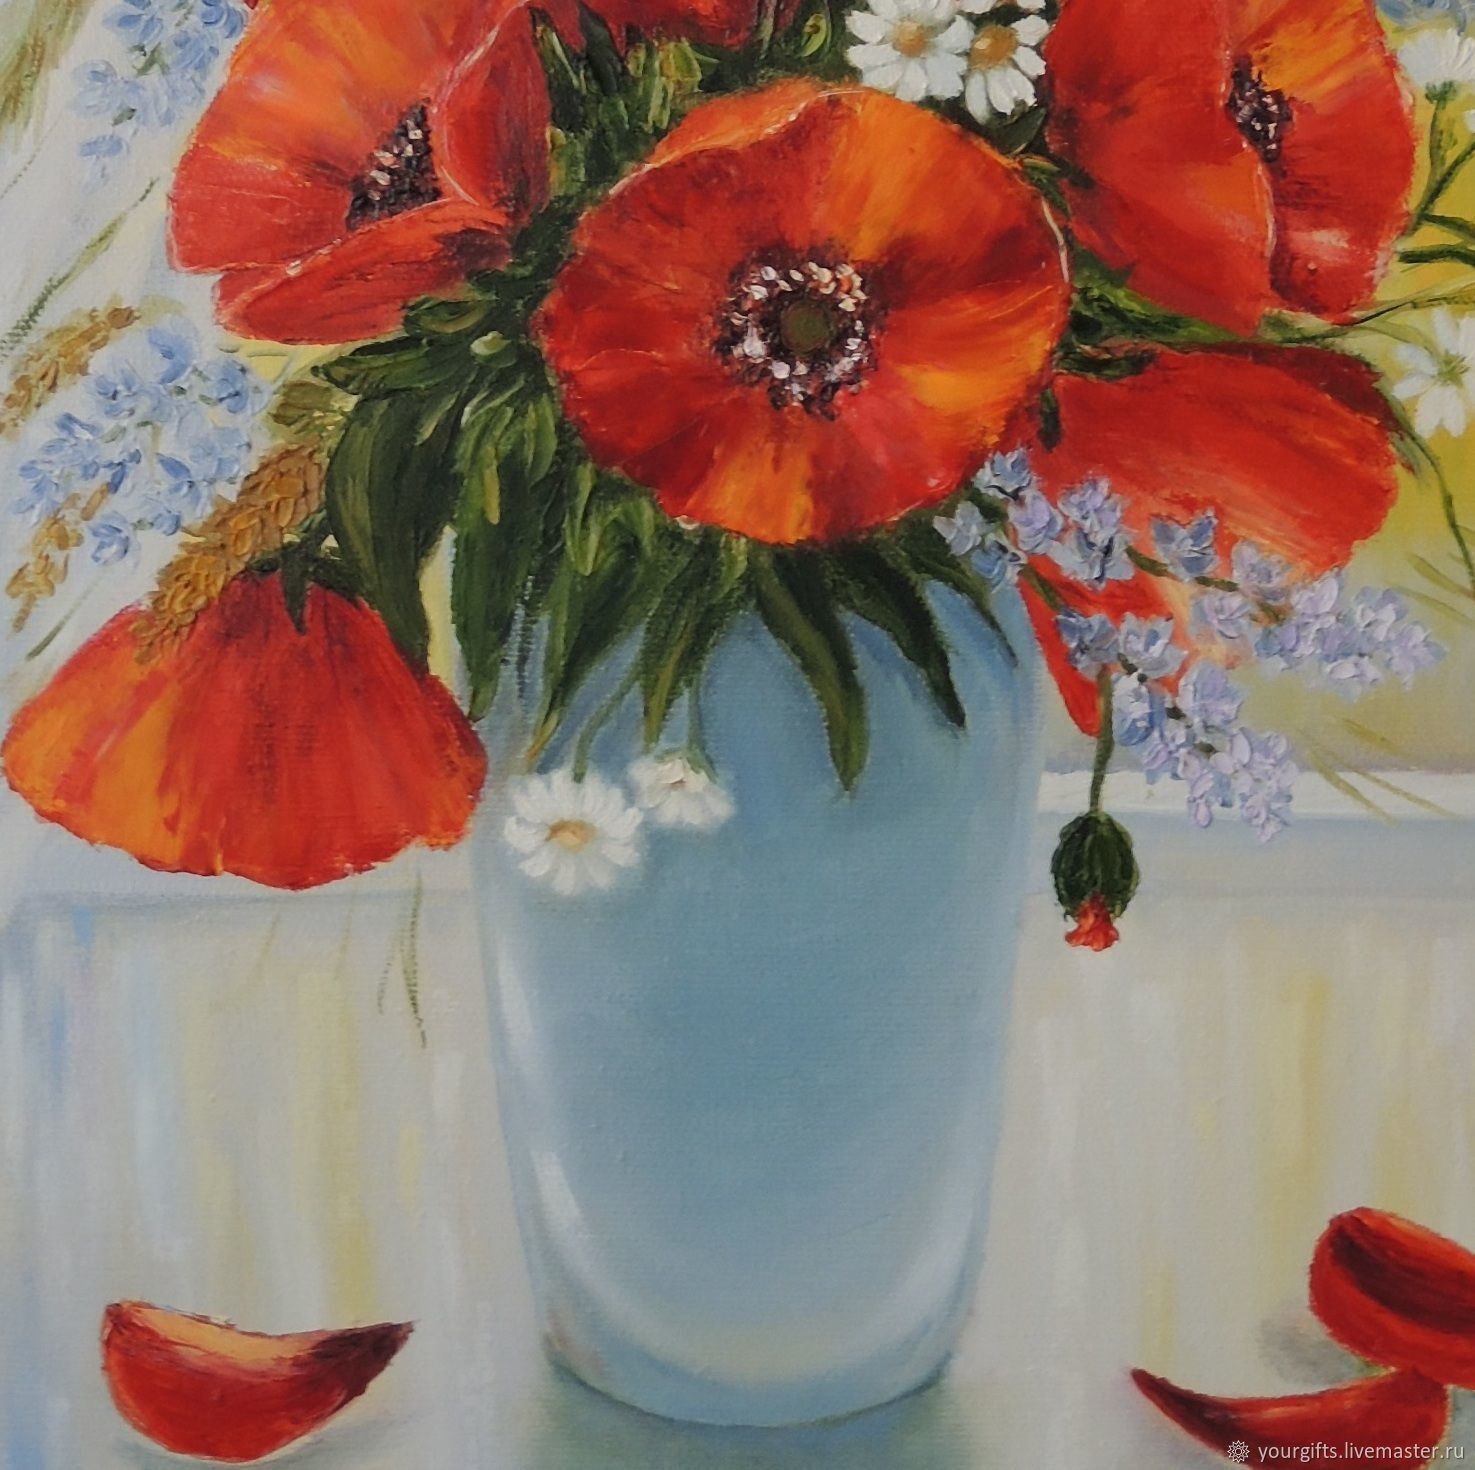 Poppies near the window oil painting flowers in a vase shop poppies near the window oil painting flowers in a vase shop online on livemaster with shipping e98n1com reviewsmspy